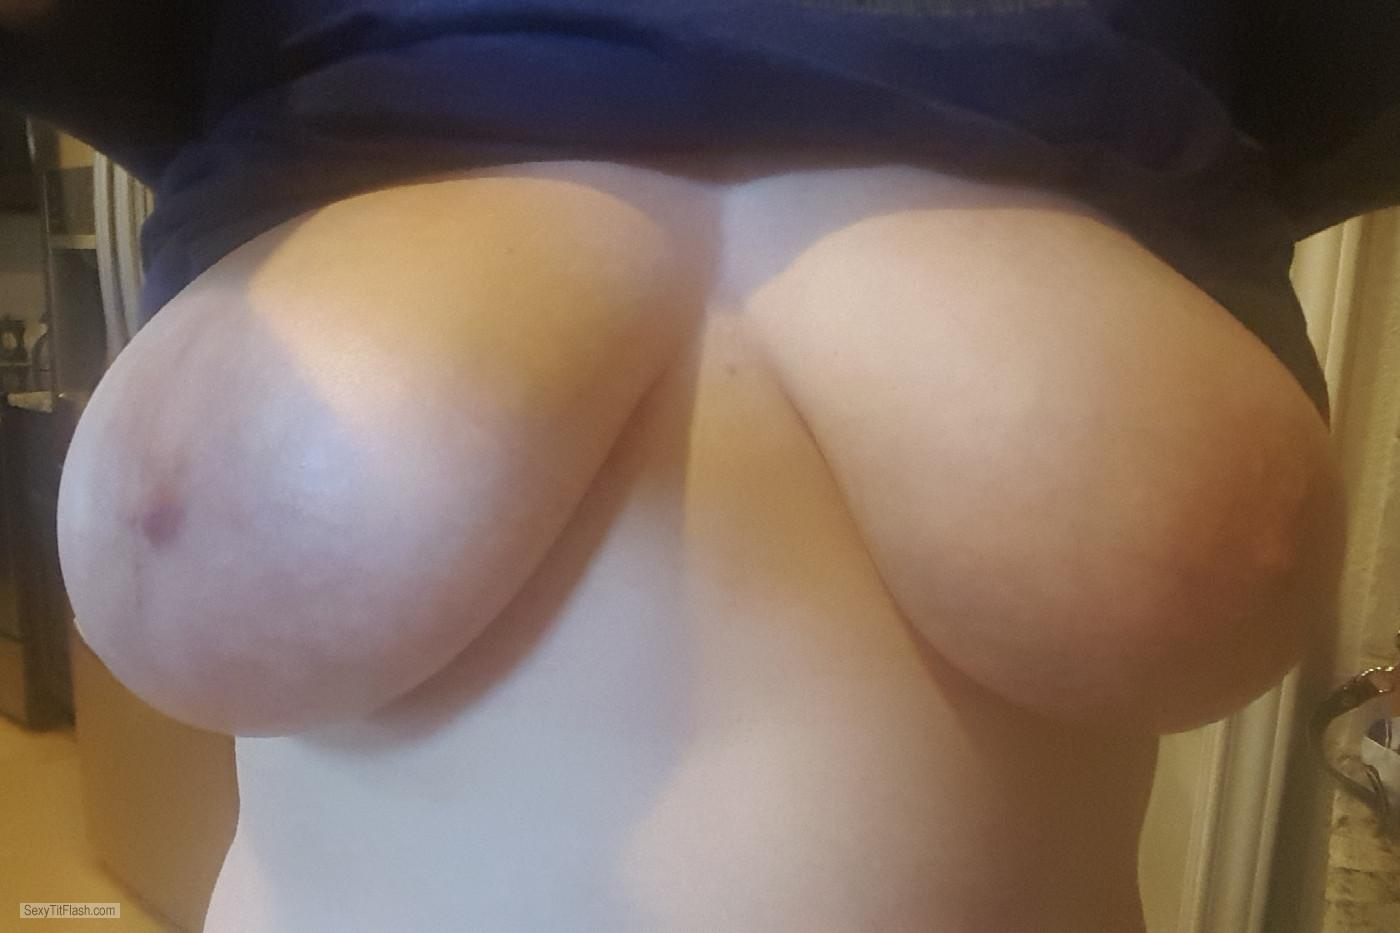 Big Tits Of My Wife Selfie by Jessica